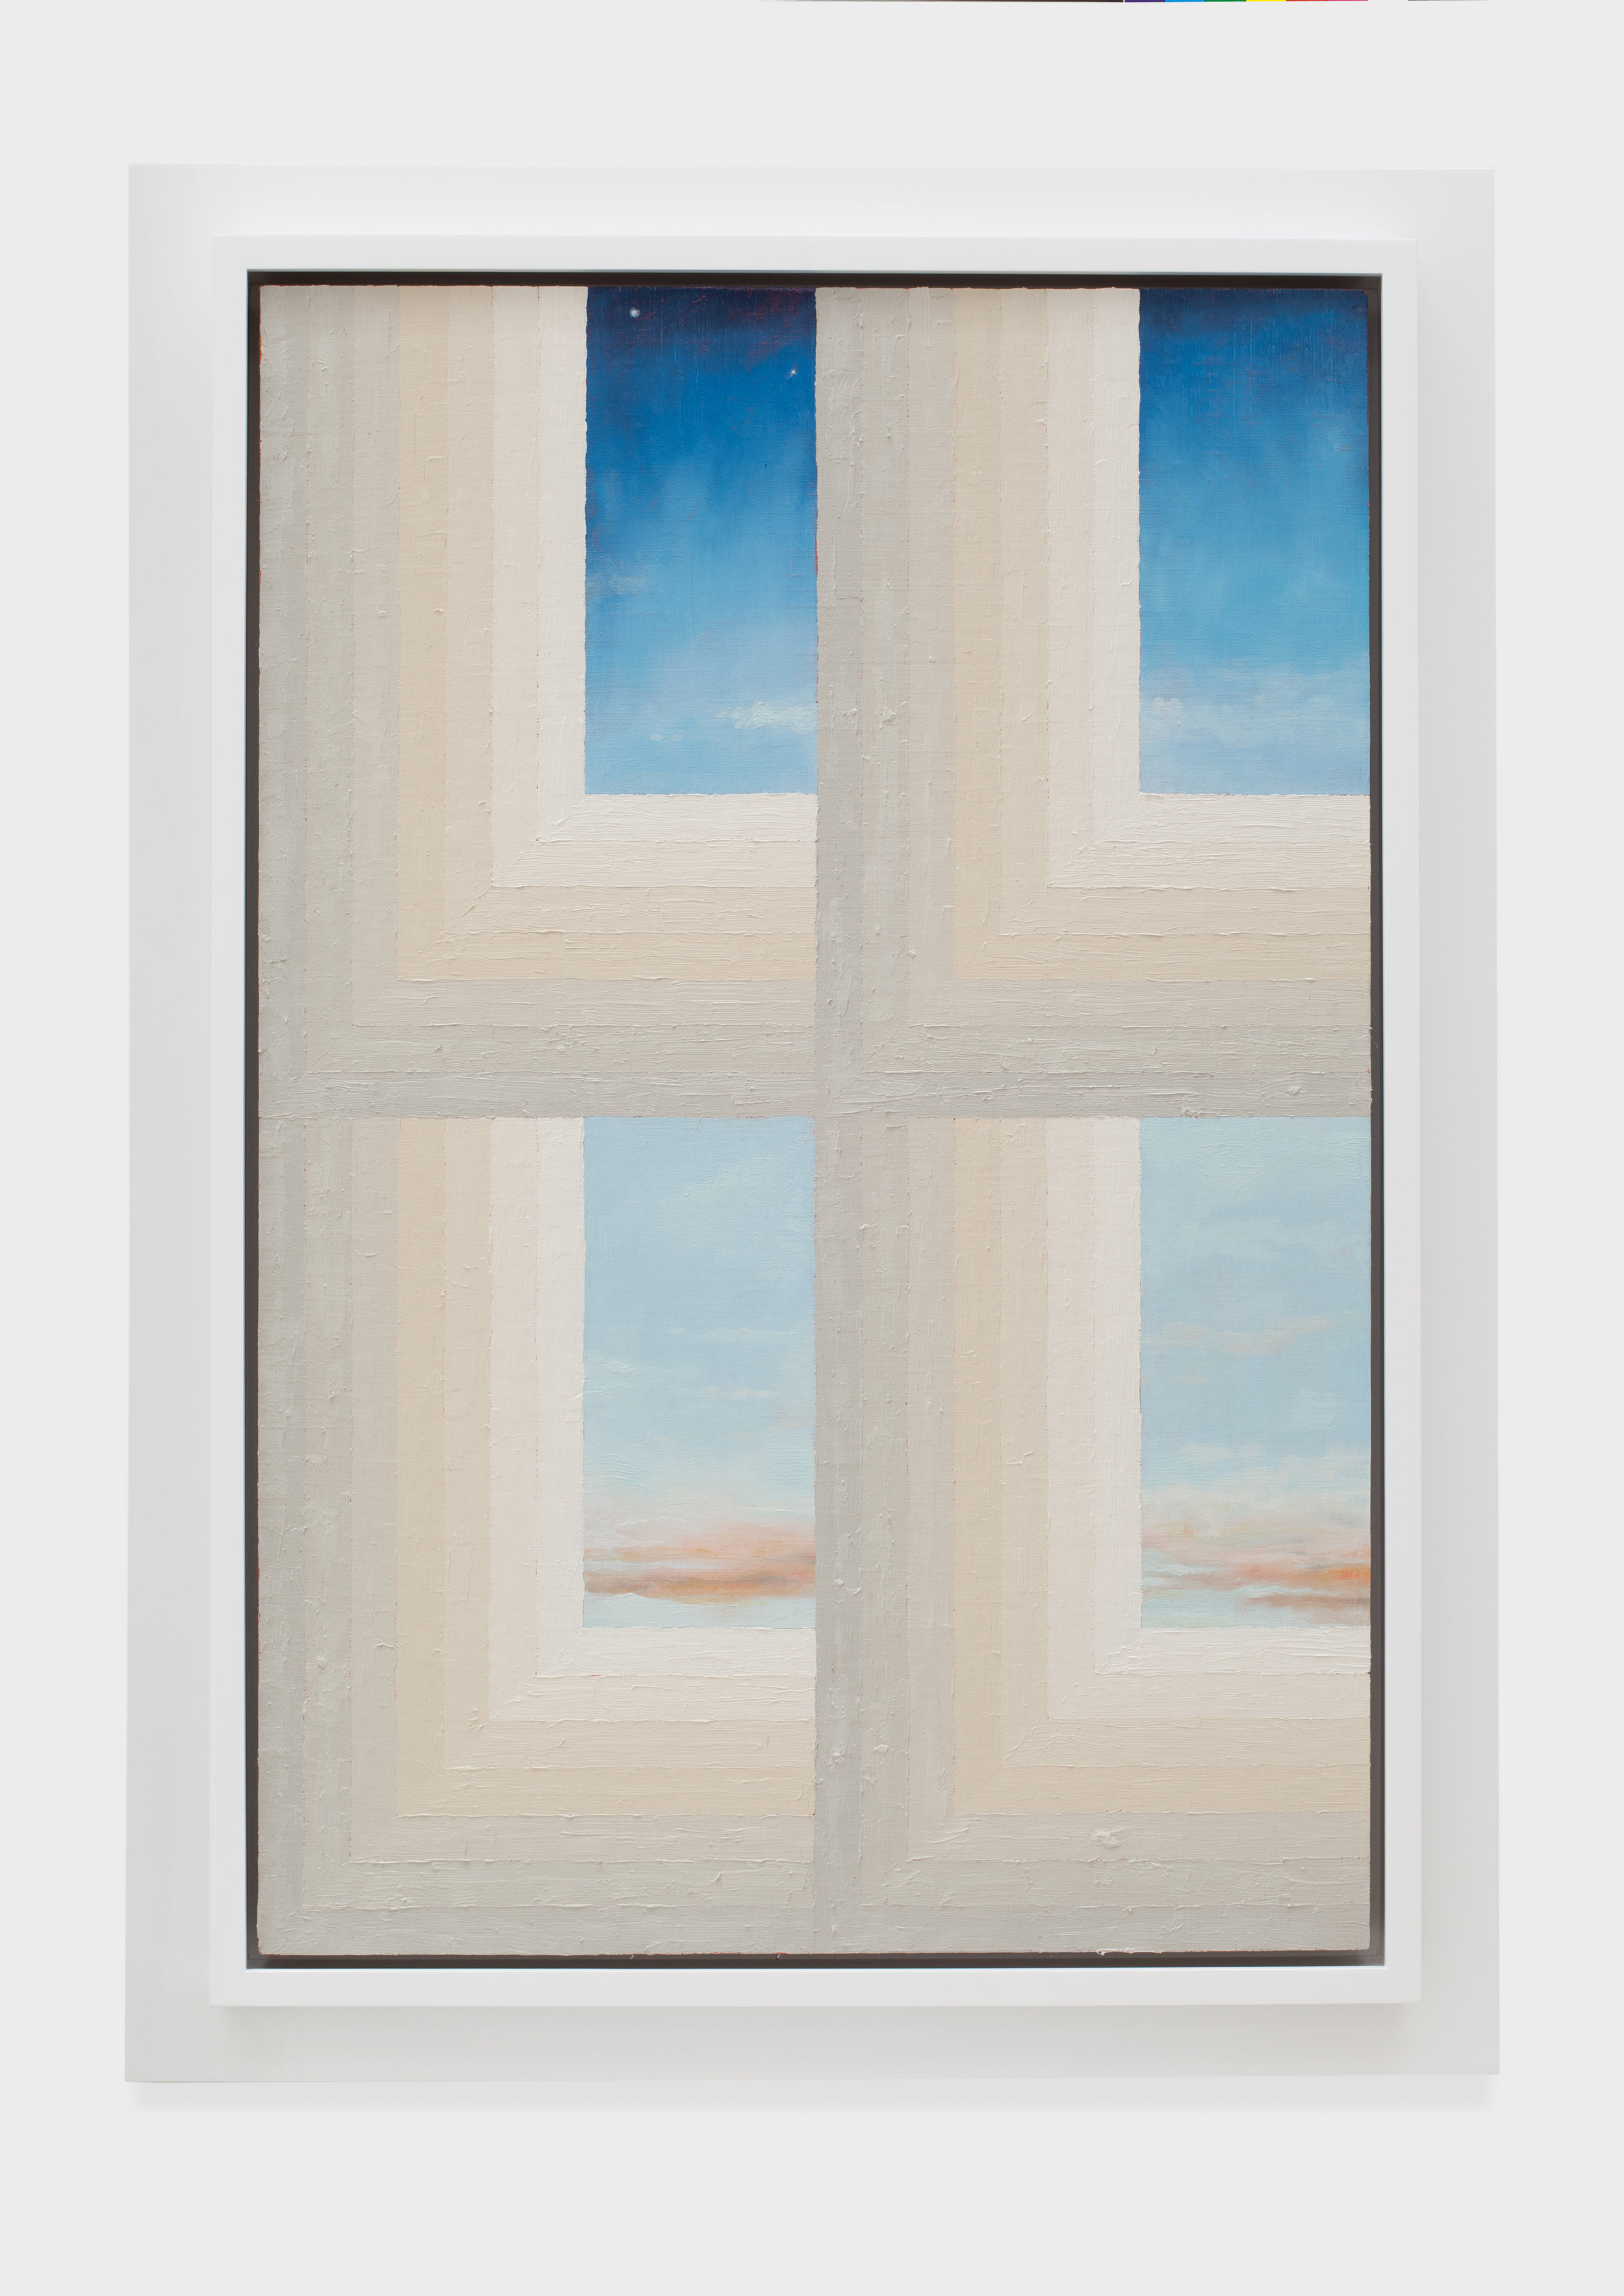 Window/Sky, 2014 acrylic and oil on linen 107 x 77 cm - 42 1/8 x 30 1/4 inches